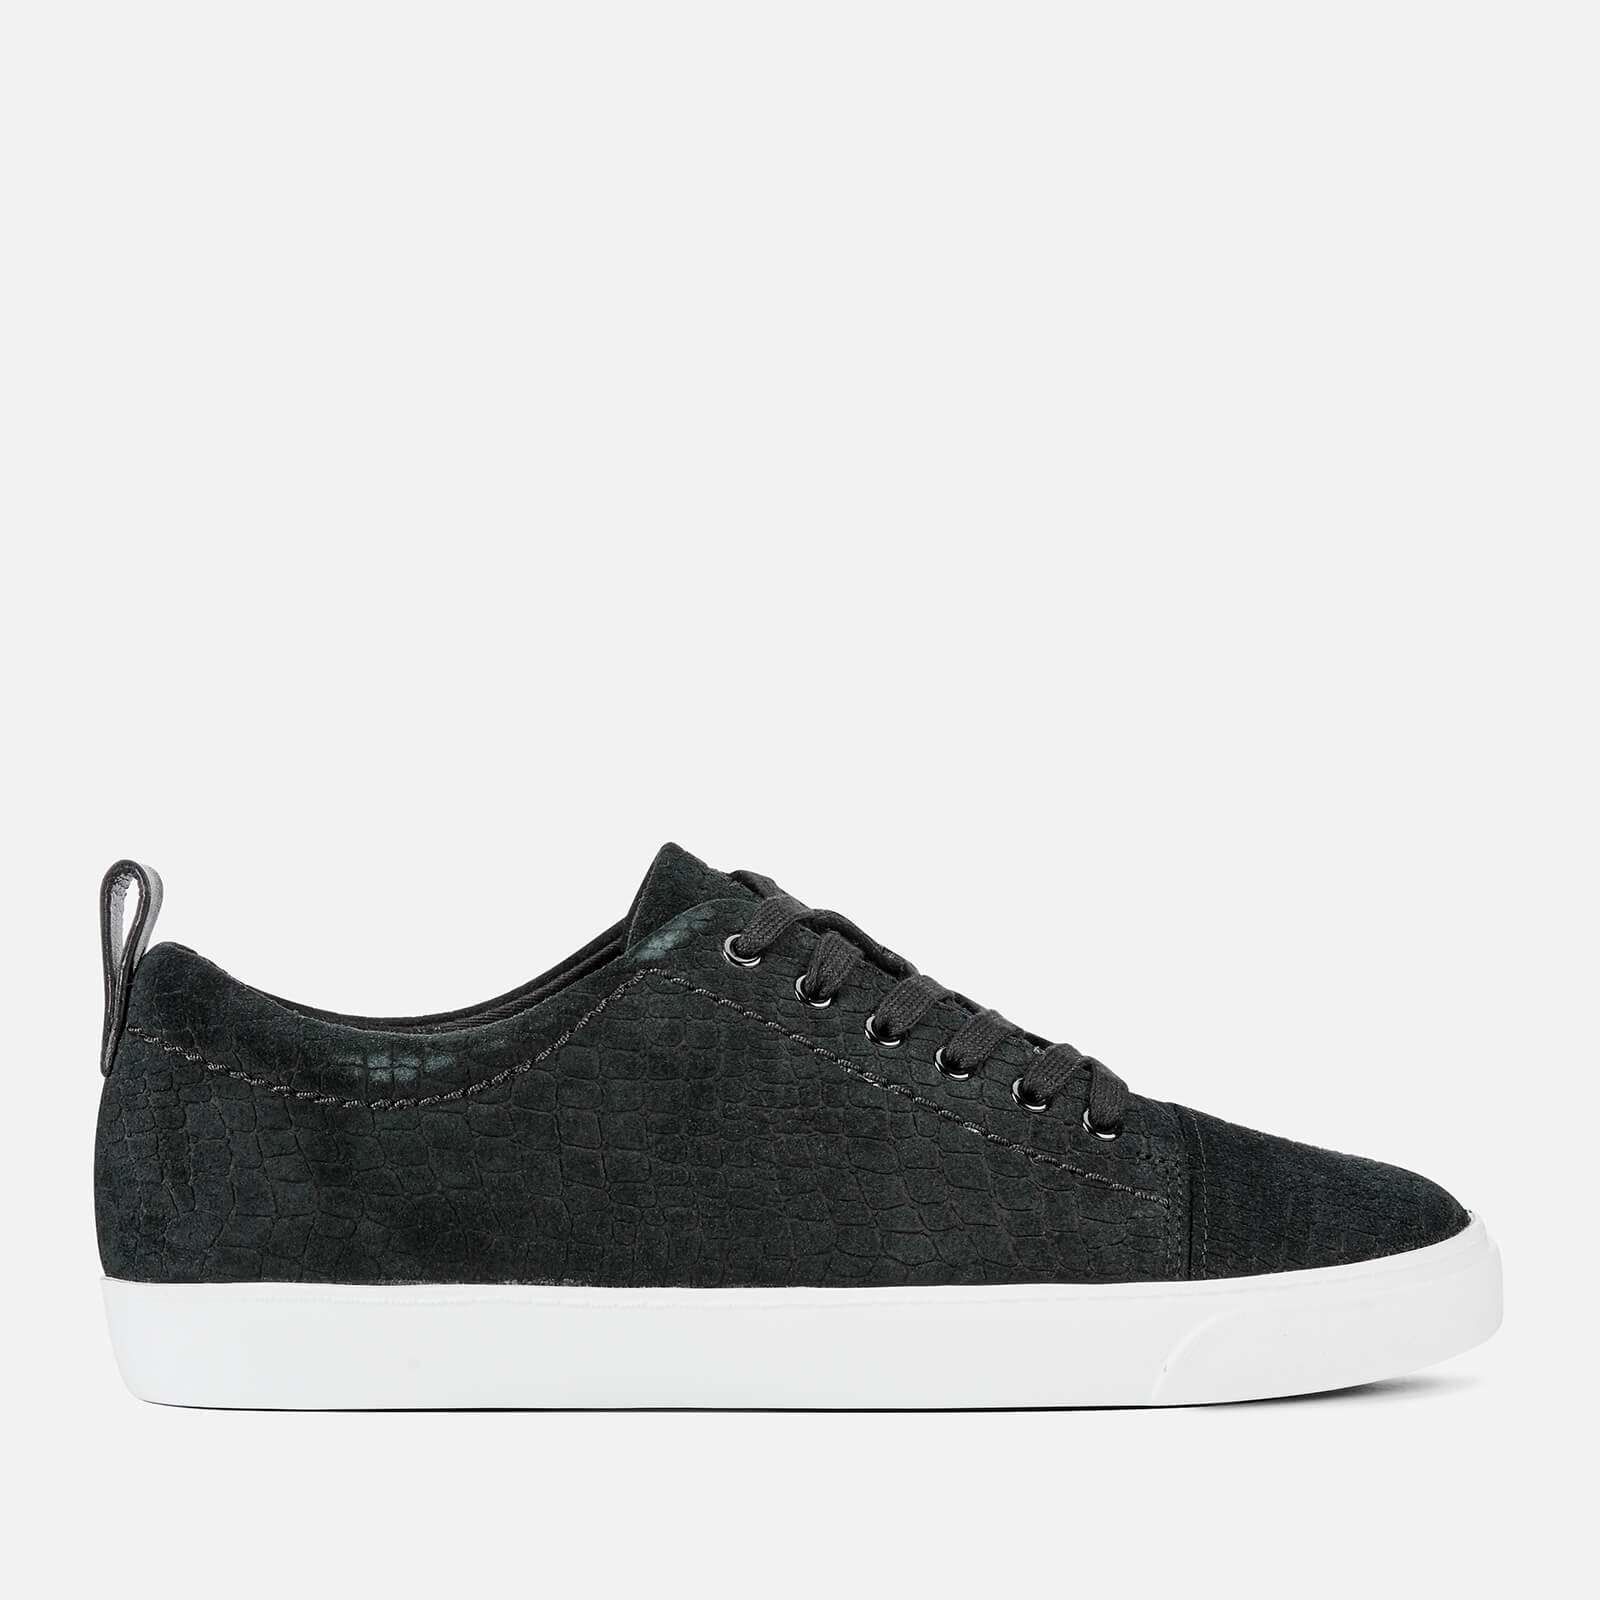 Clarks Women's Glove Echo Low Top Trainers - Black